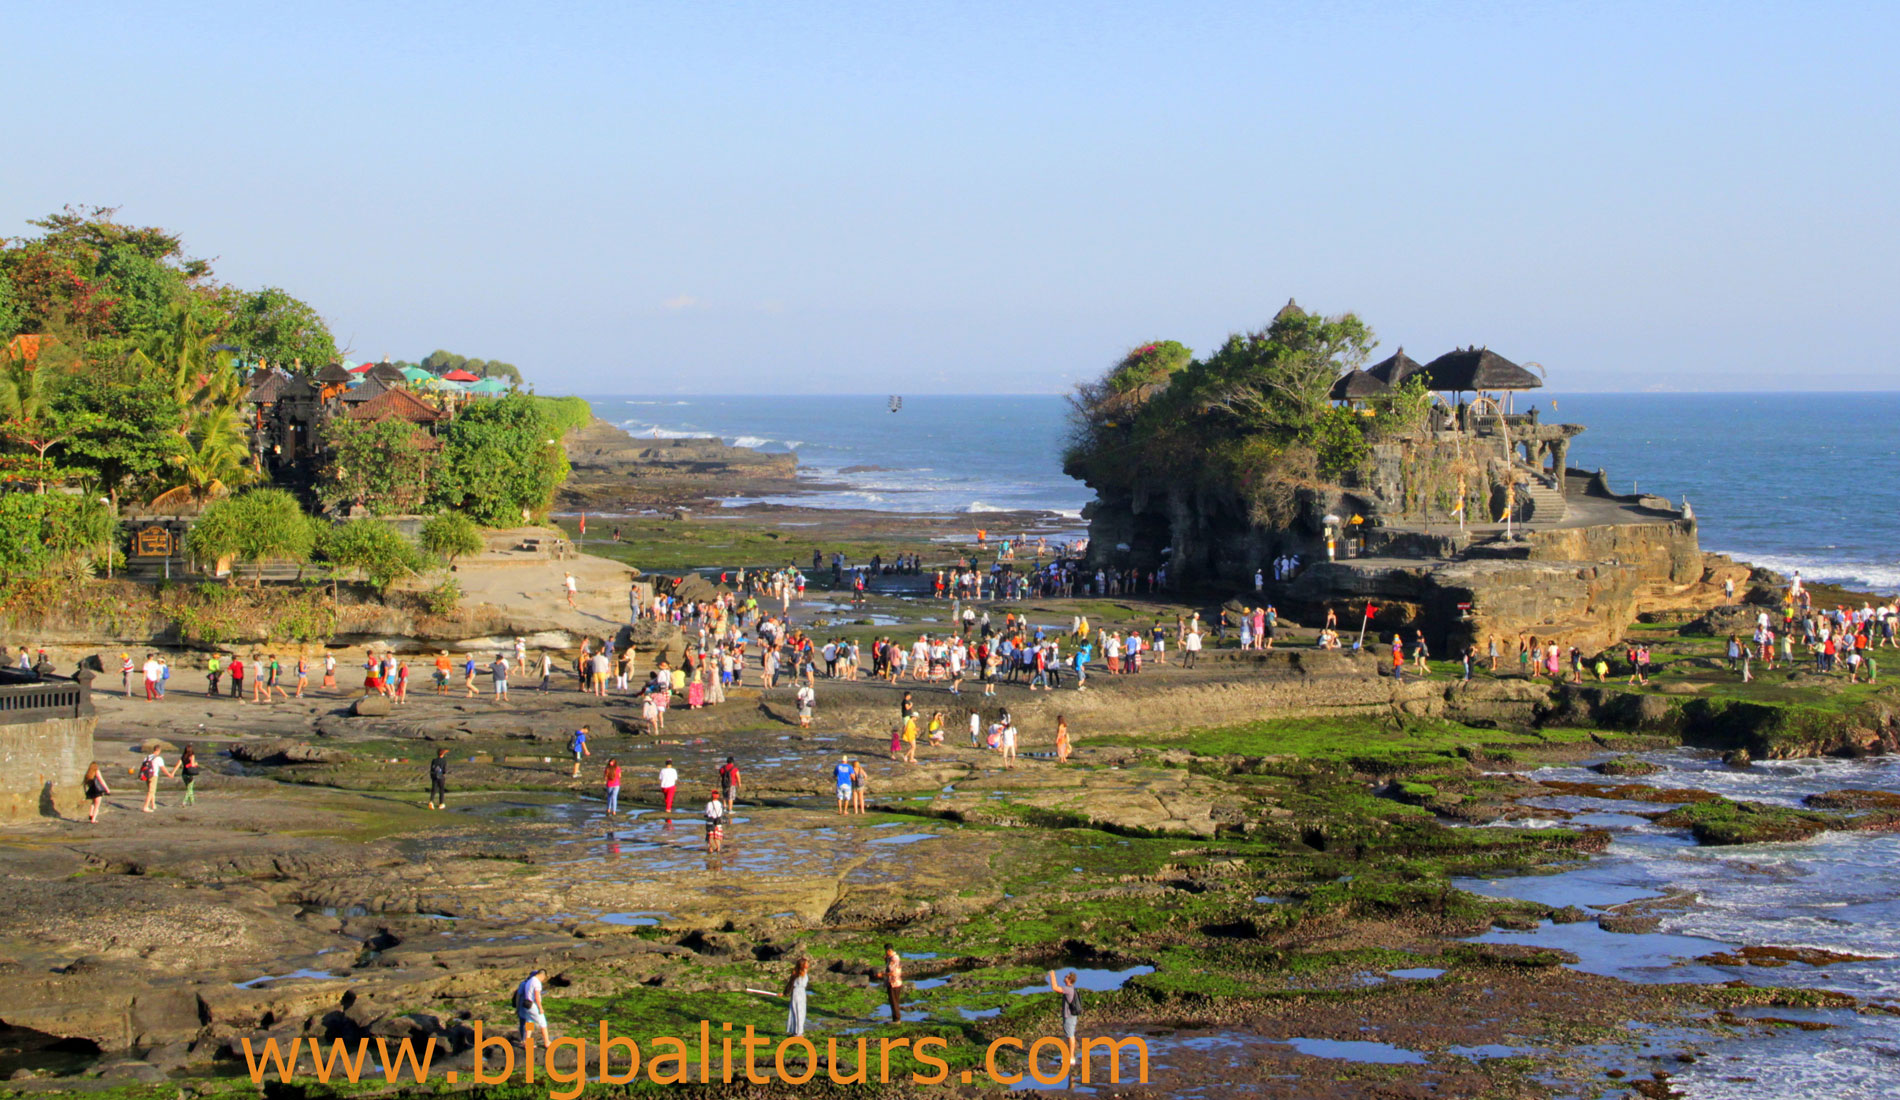 Tanahlot - Bali Tours Activities